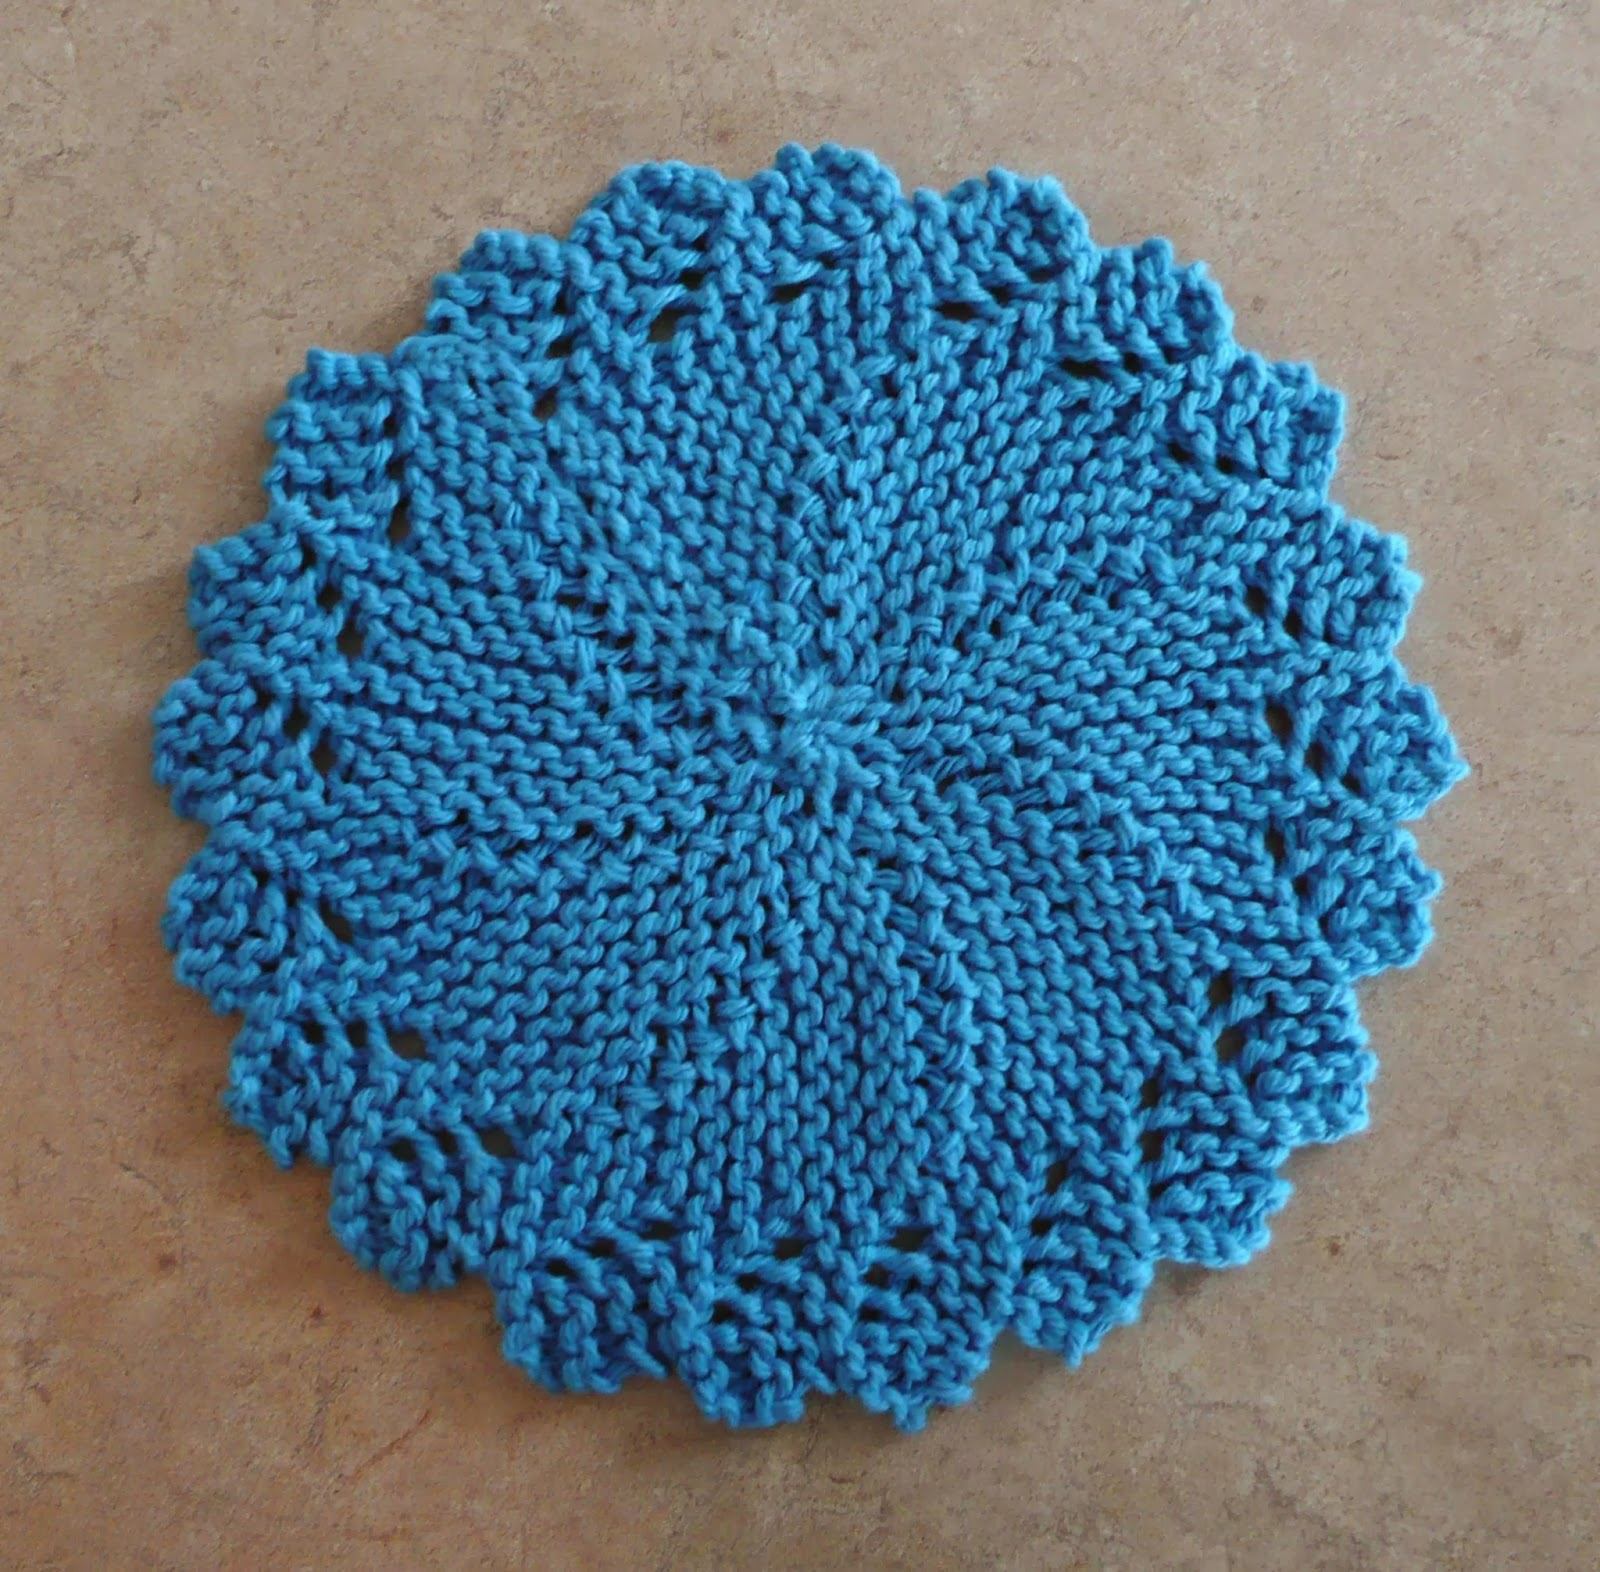 Knitting Patterns With Round Needles : Perfect One-Ounce Dishcloth - FREE Patterns: FREE PATTERN #11 - Knitlist Lacy...